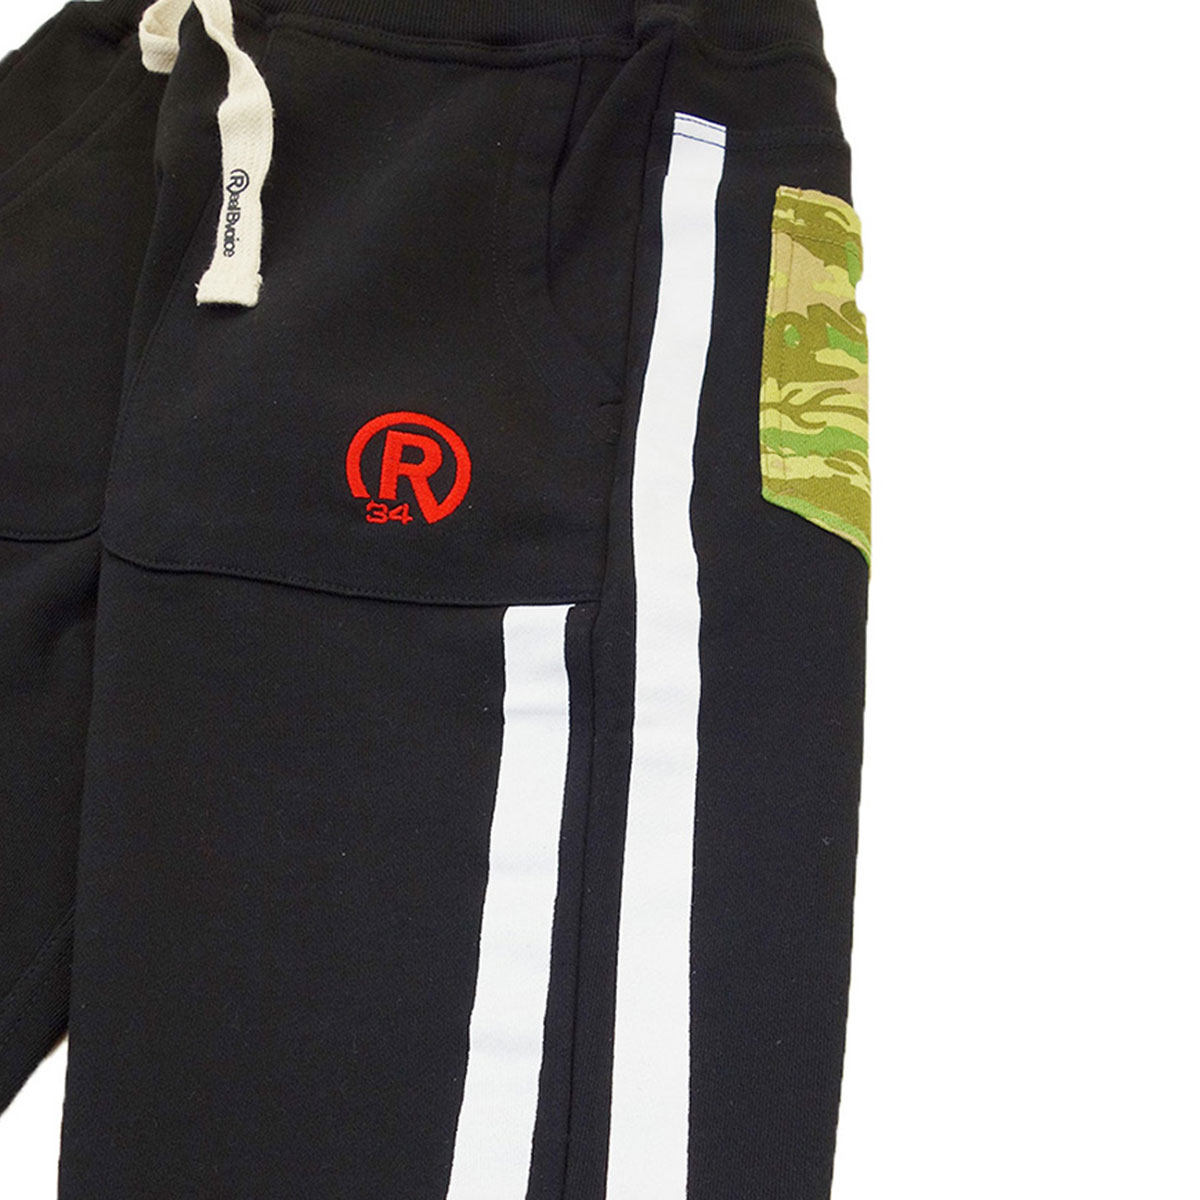 SEVEN LENGTH CAMOU SWEAT PANTS